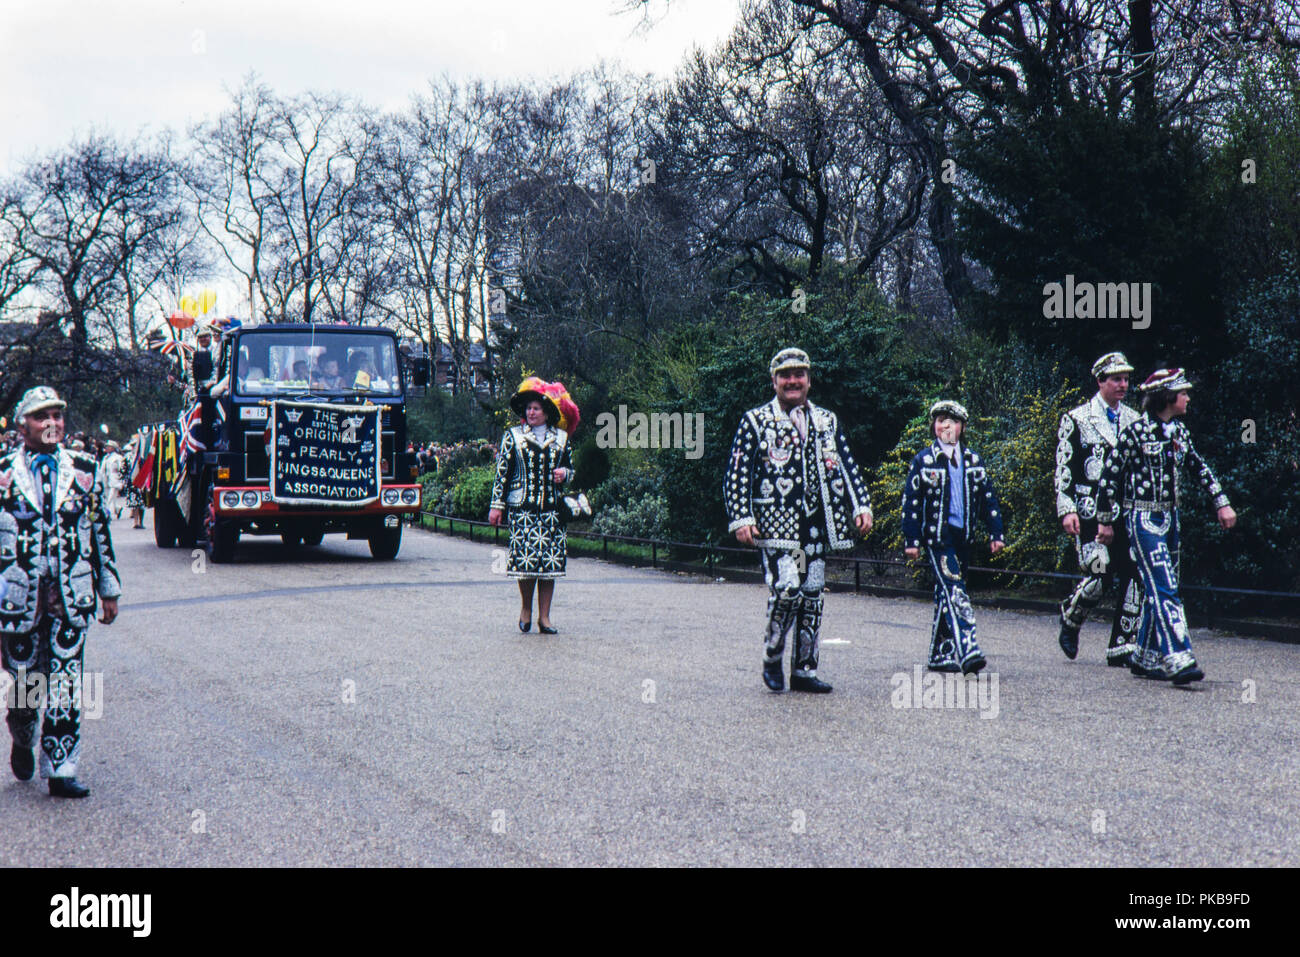 The originall Pearly Kings and queens Association on parade in Battersea Park, London in April 1980 - Stock Image